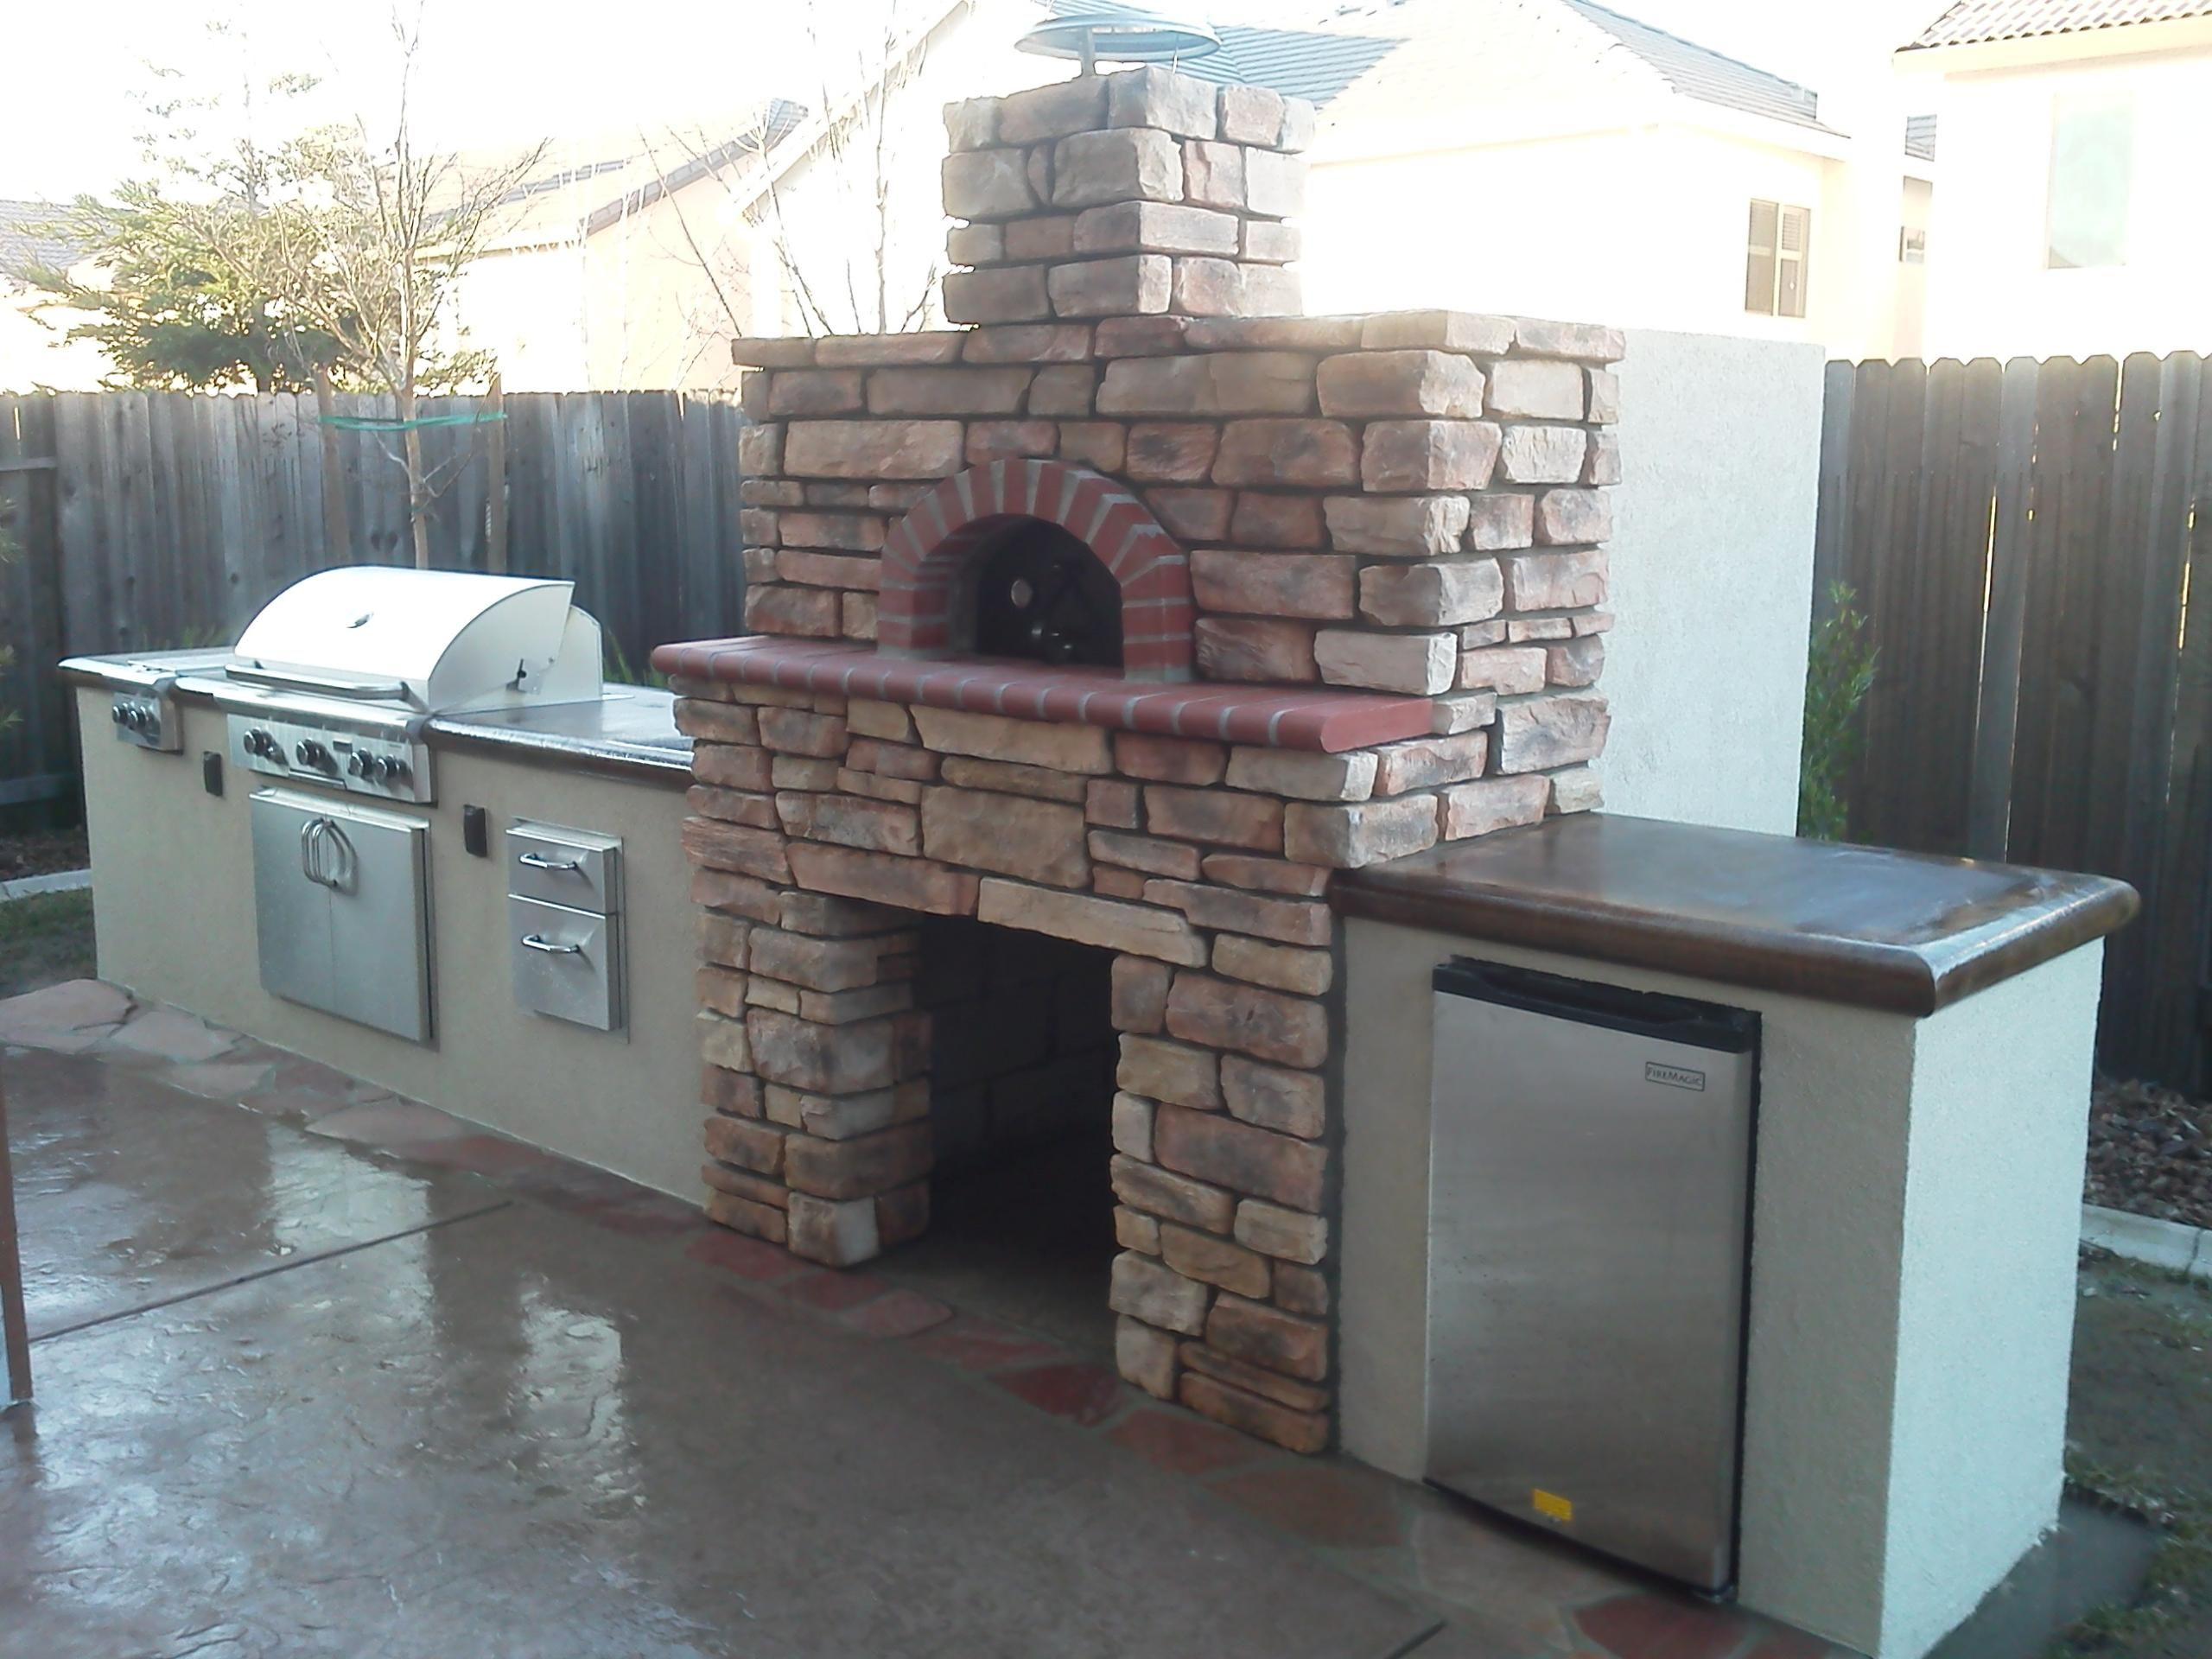 Outdoor Kitchen Designs With Pizza Oven Brilliant Outdoor Kitchen With A Wood Fired Pizza Oven  Gb Stoneworks Inspiration Design